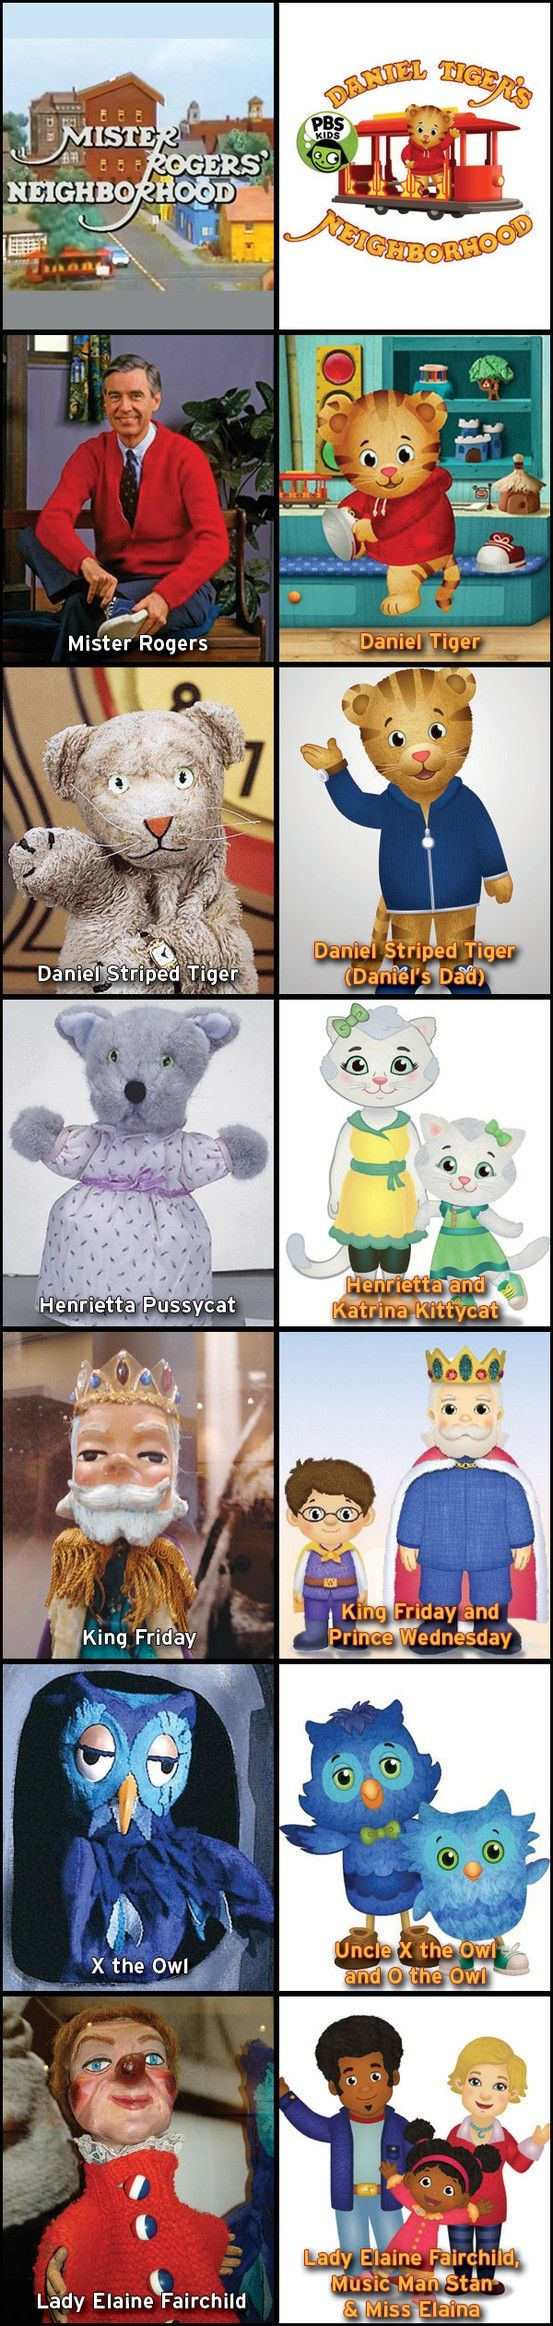 "We love Mister Rogers and are so proud that ""Daniel Tiger's Neighborhood"" carries on his legacy. The series features many of the same characters in animated form, spreading Fred Rogers' lessons about creativity, imagination, and individuality to a new generation."